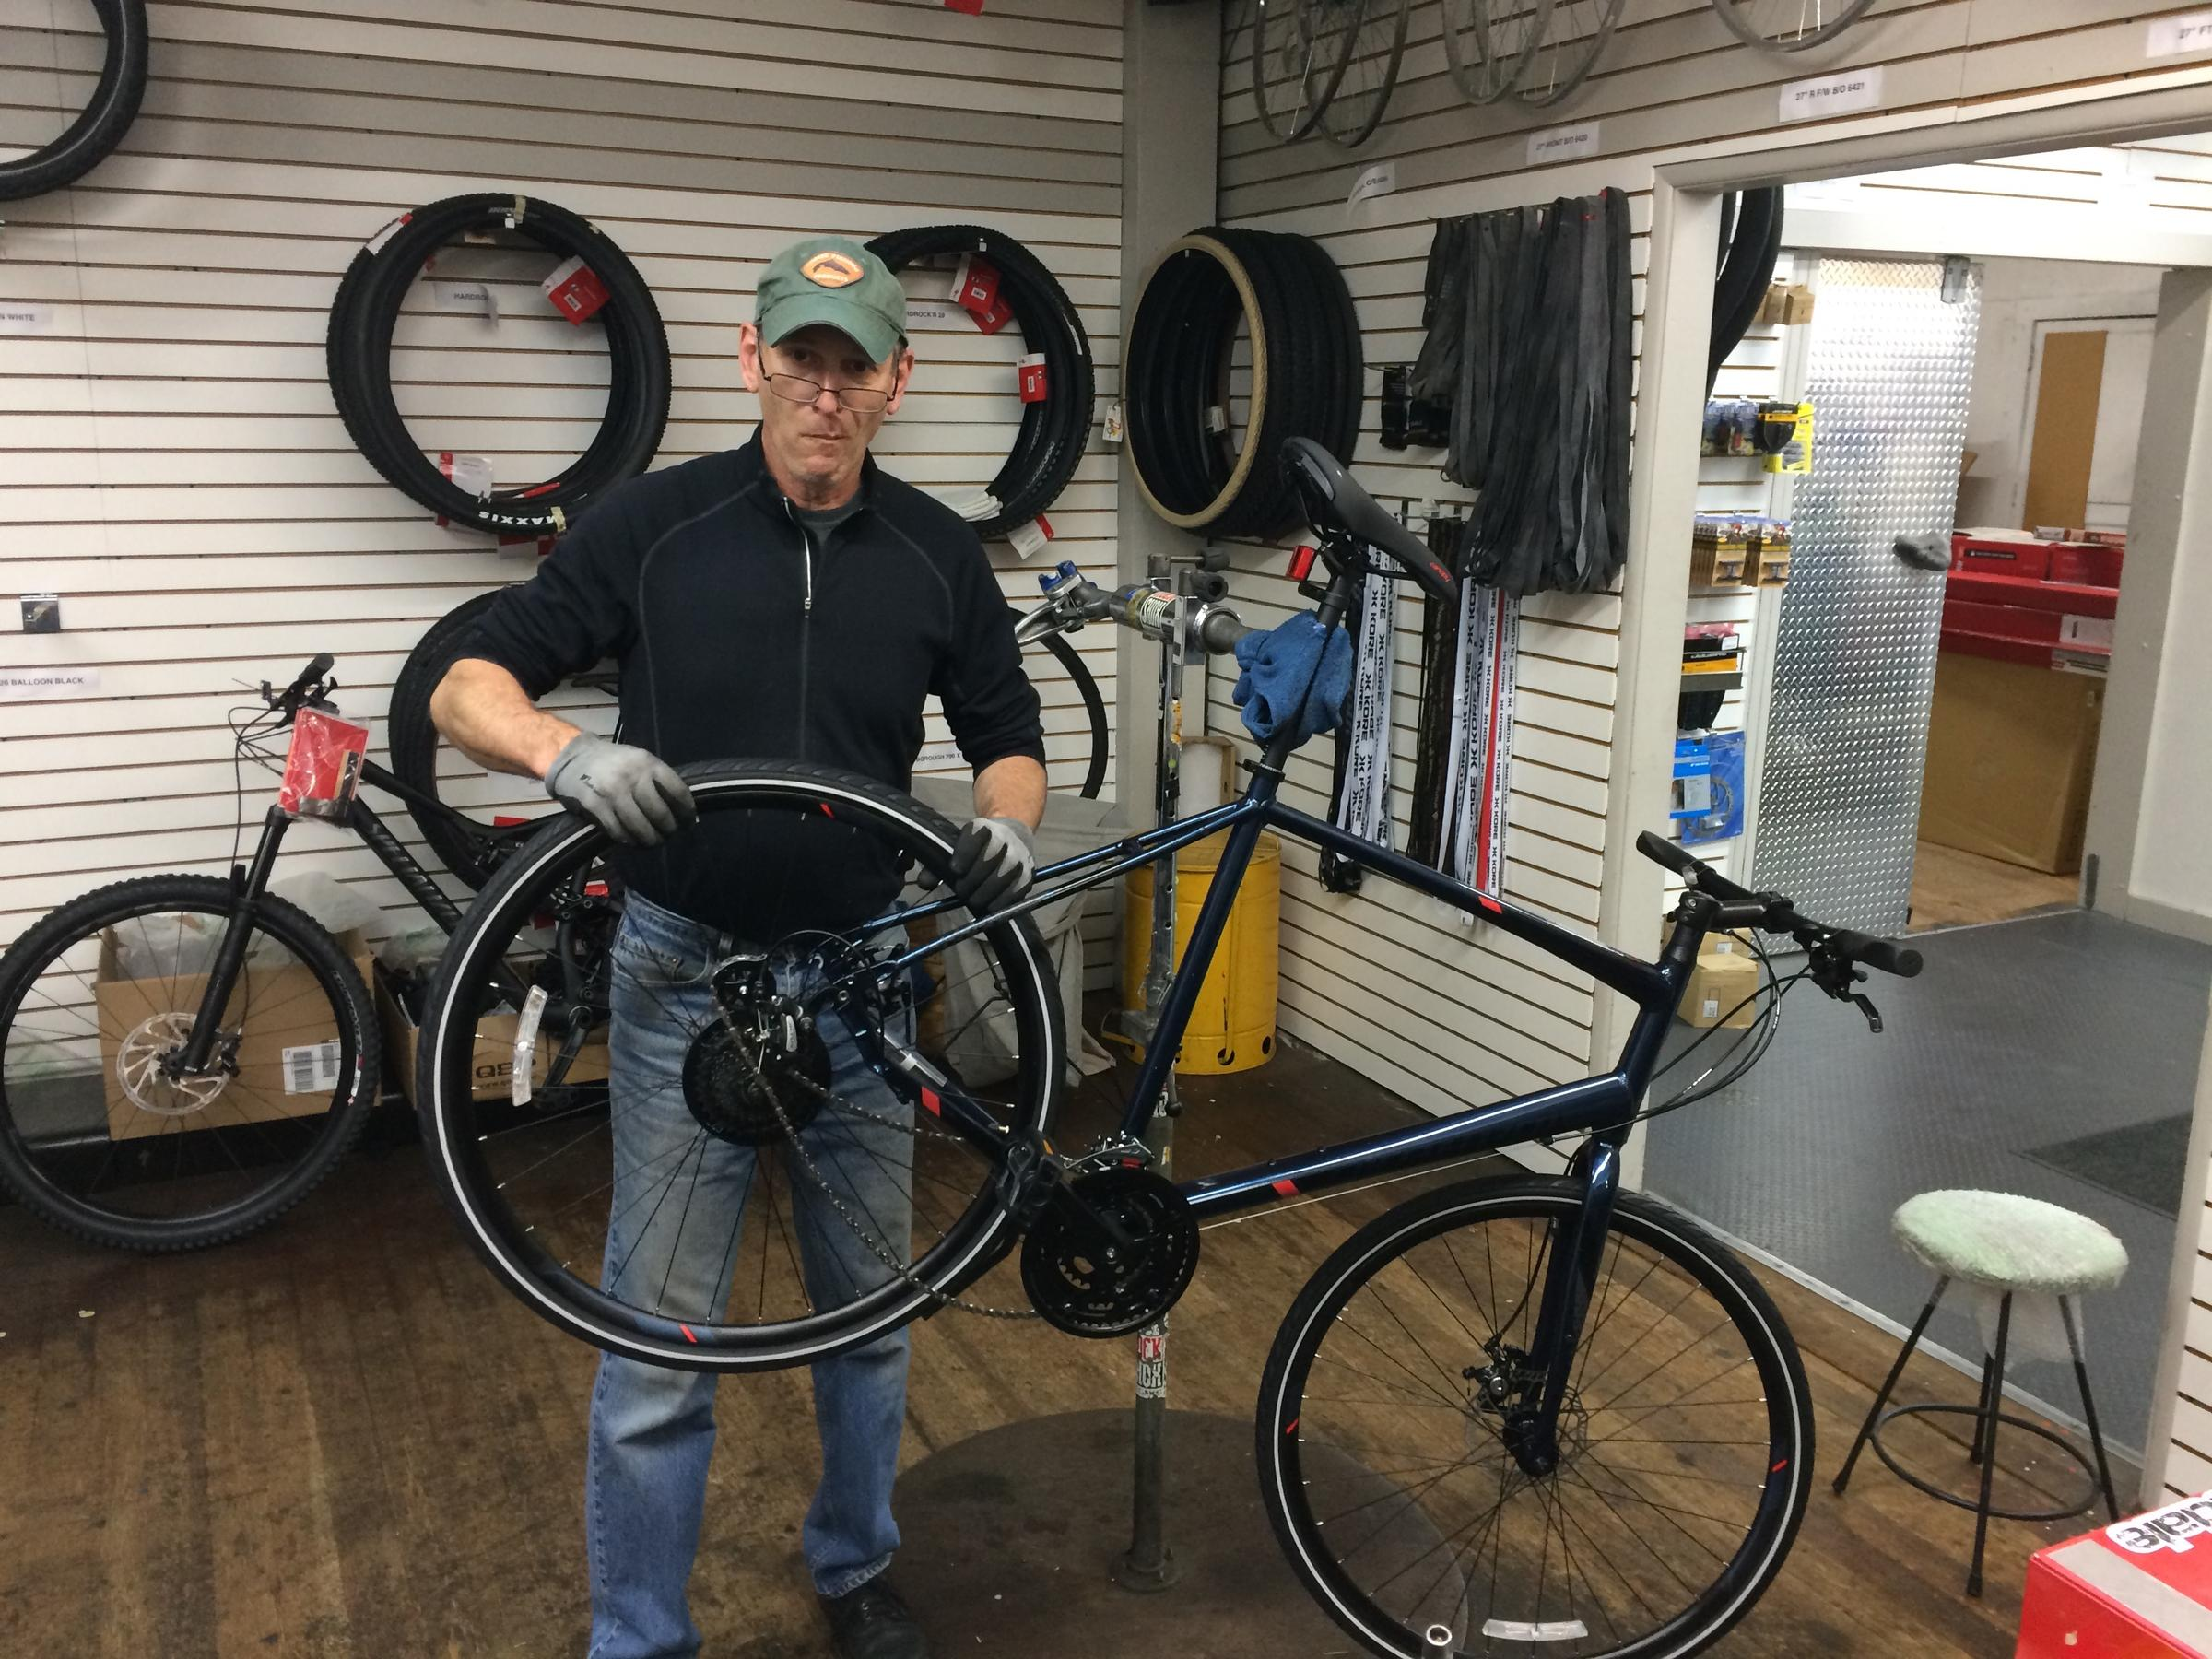 Mark Lipchick Builds And Repairs Bikes At Hutchu0027s Bicycles In Eugene.